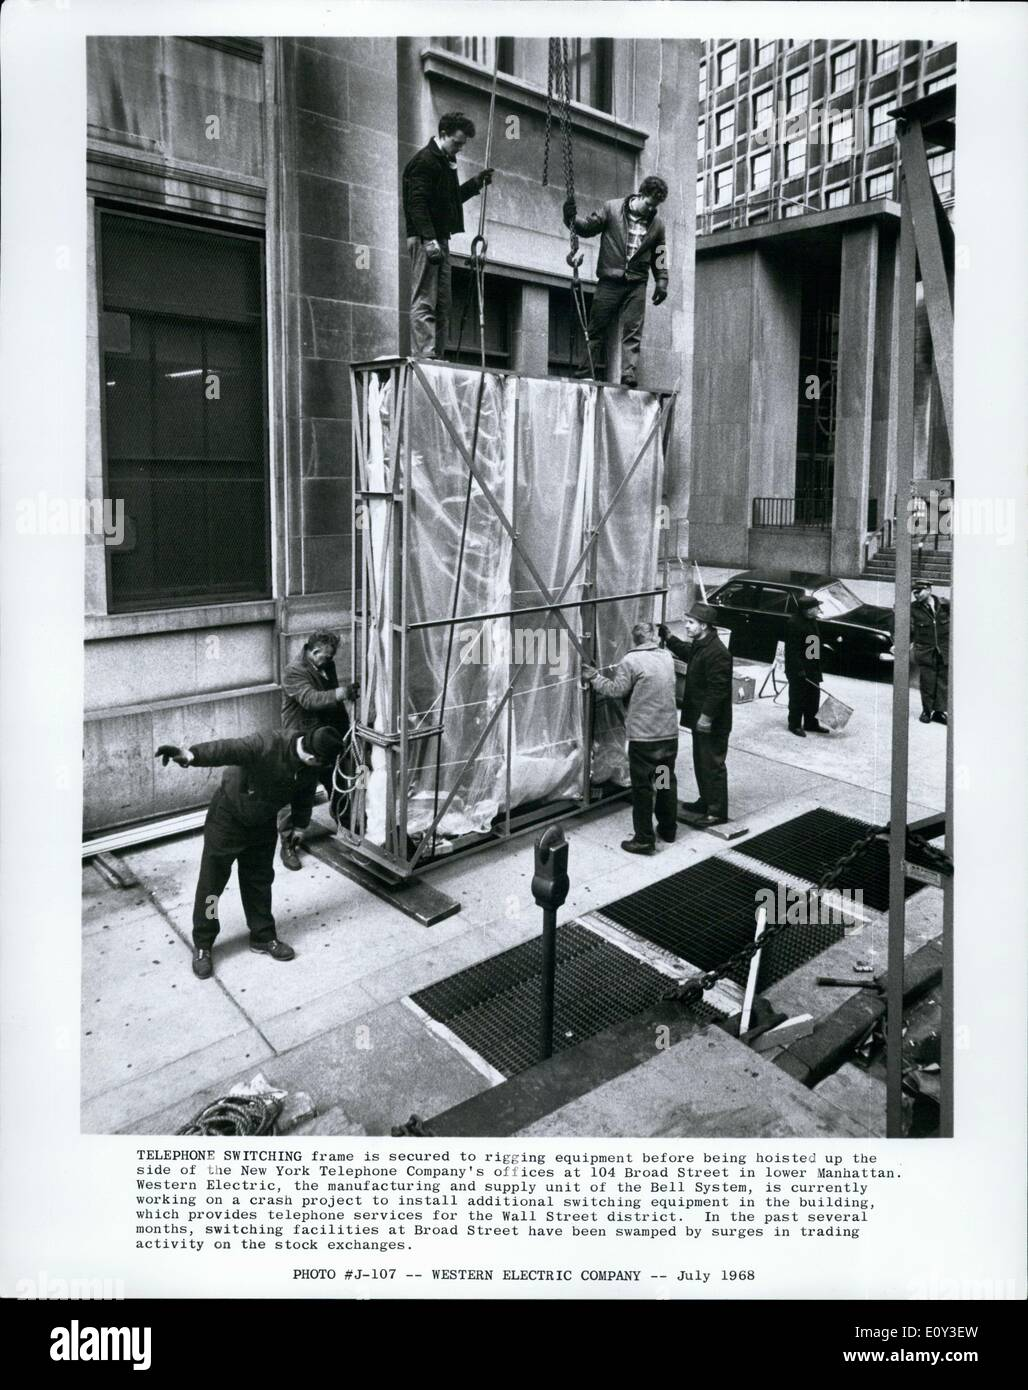 Jul. 07, 1968 - Telephone Switching frame is secured to rigging equipment before being hoisted up the side of the - Stock Image